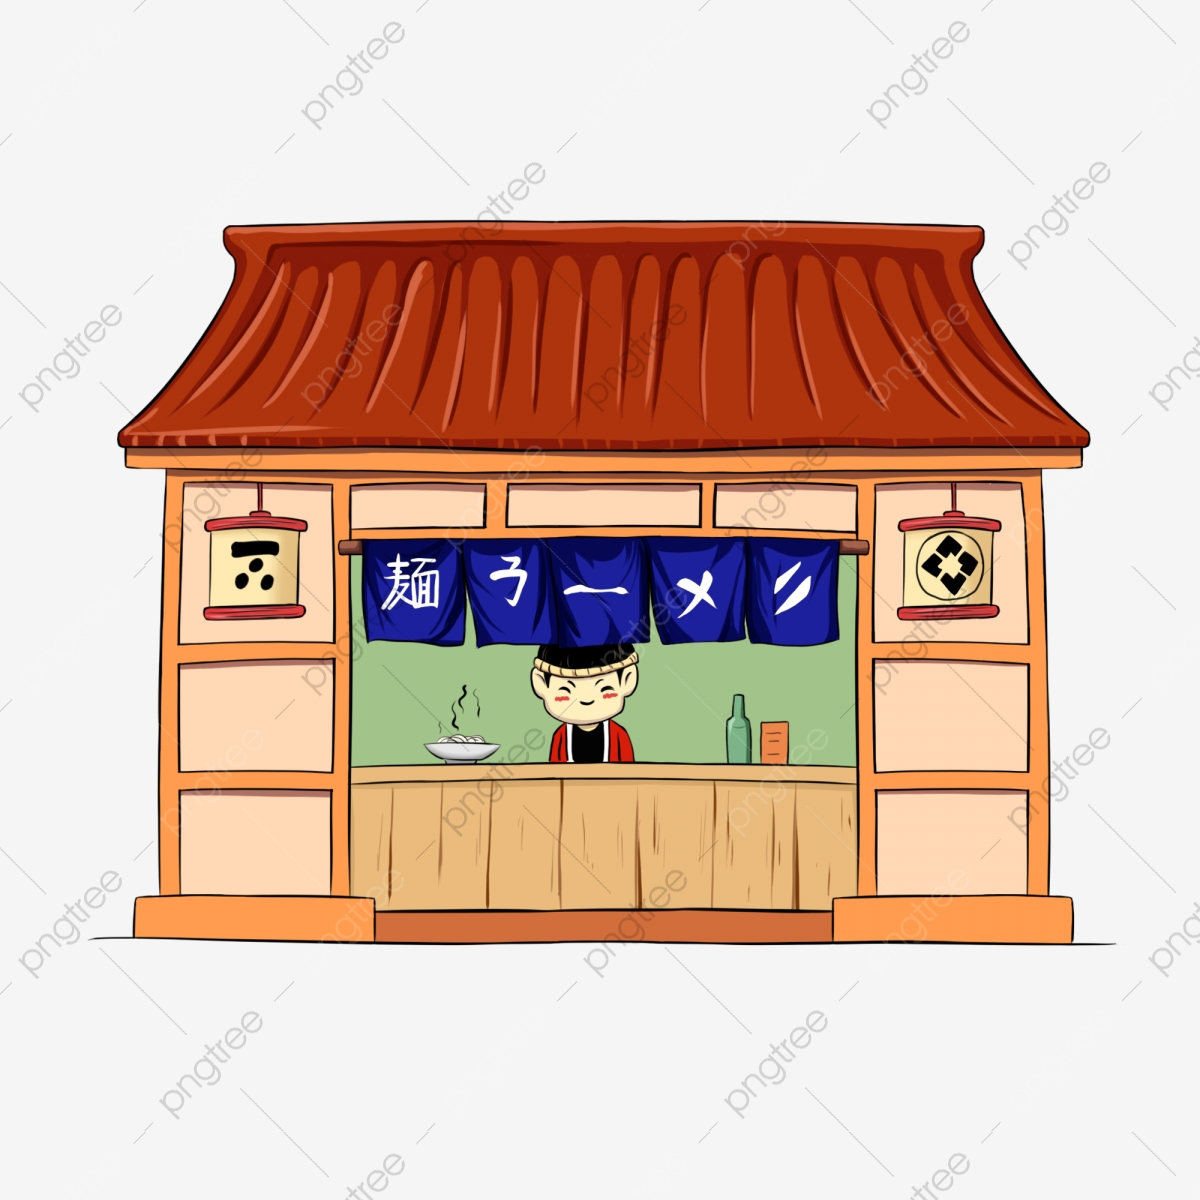 Japanese Ramen Noodle Decoration Illustration Japanese Ramen Noodle Restaurant Yellow House Beautiful Ramen Noodle Restaurant Png Transparent Clipart Image And Psd File For Free Download